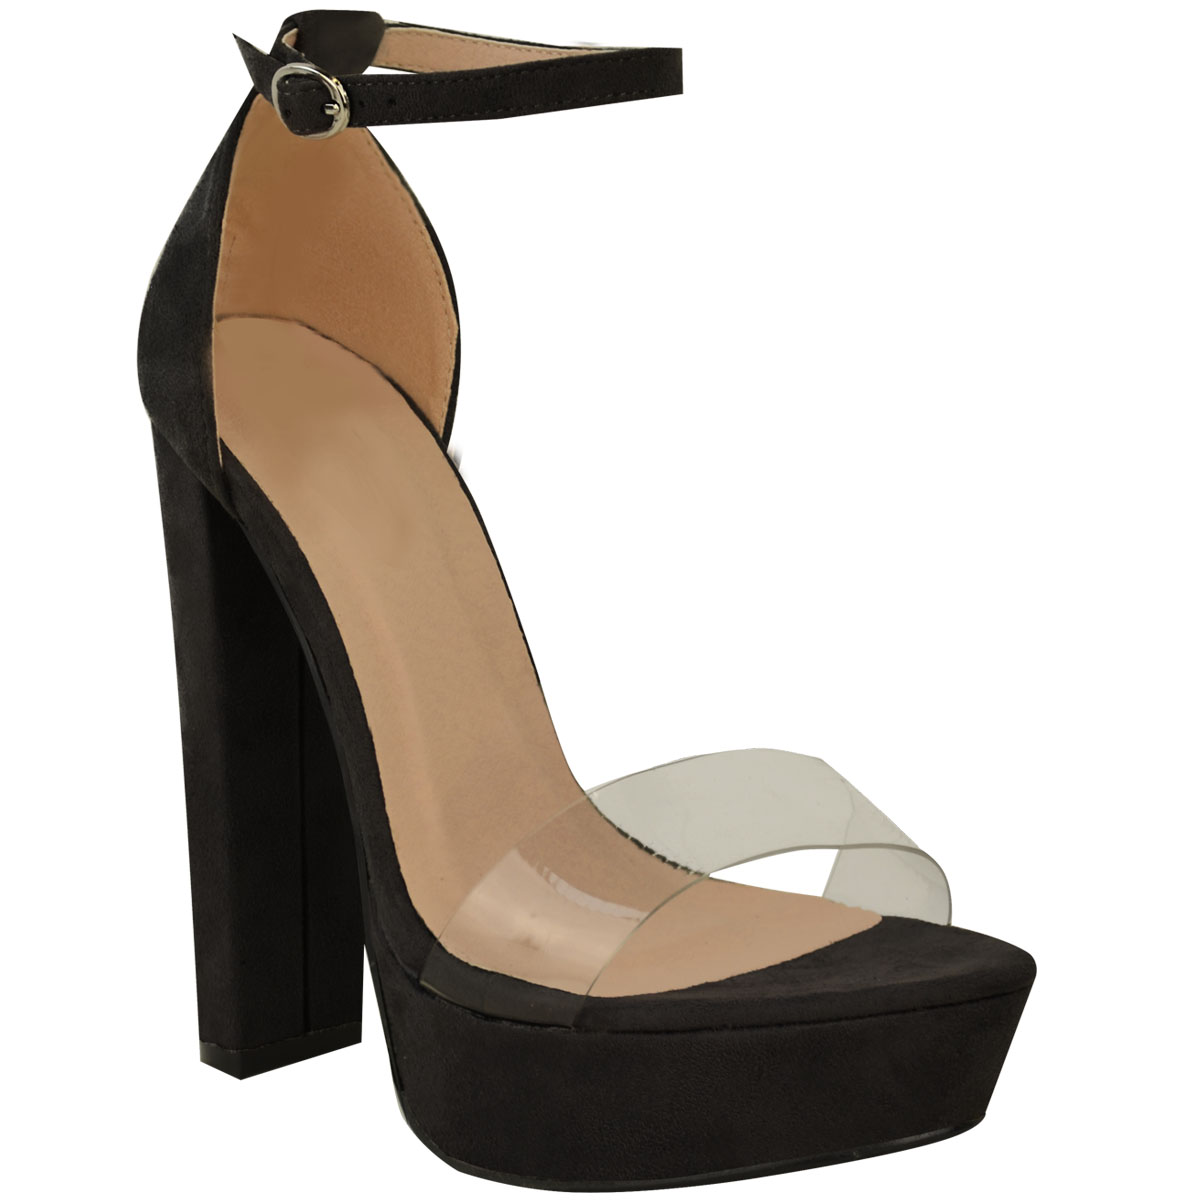 New Womens Ladies High Heel Perspex Ankle Strappy Celeb Sandals Shoes Size 3-8   EBay